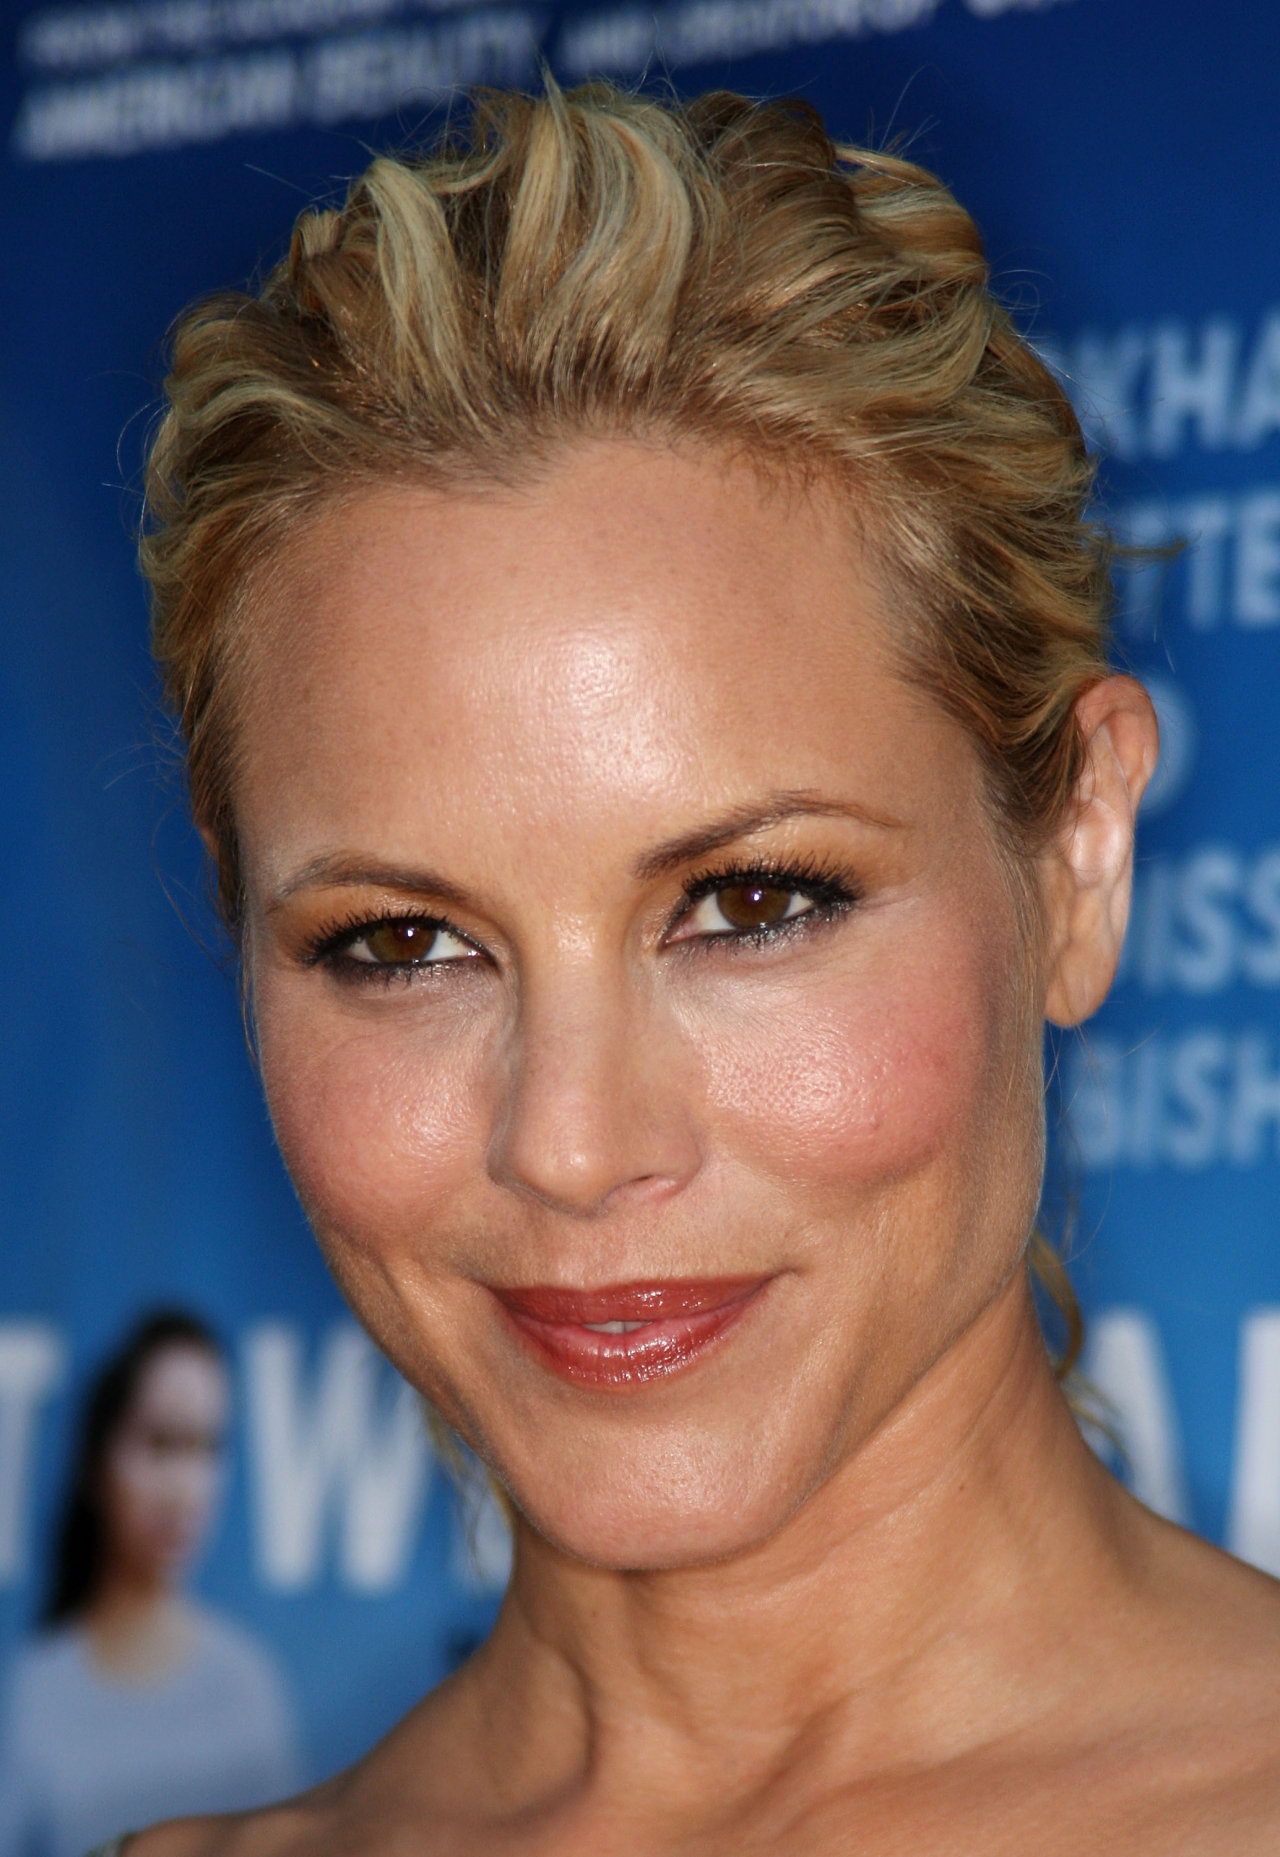 Maria bello wallpapers (96129)